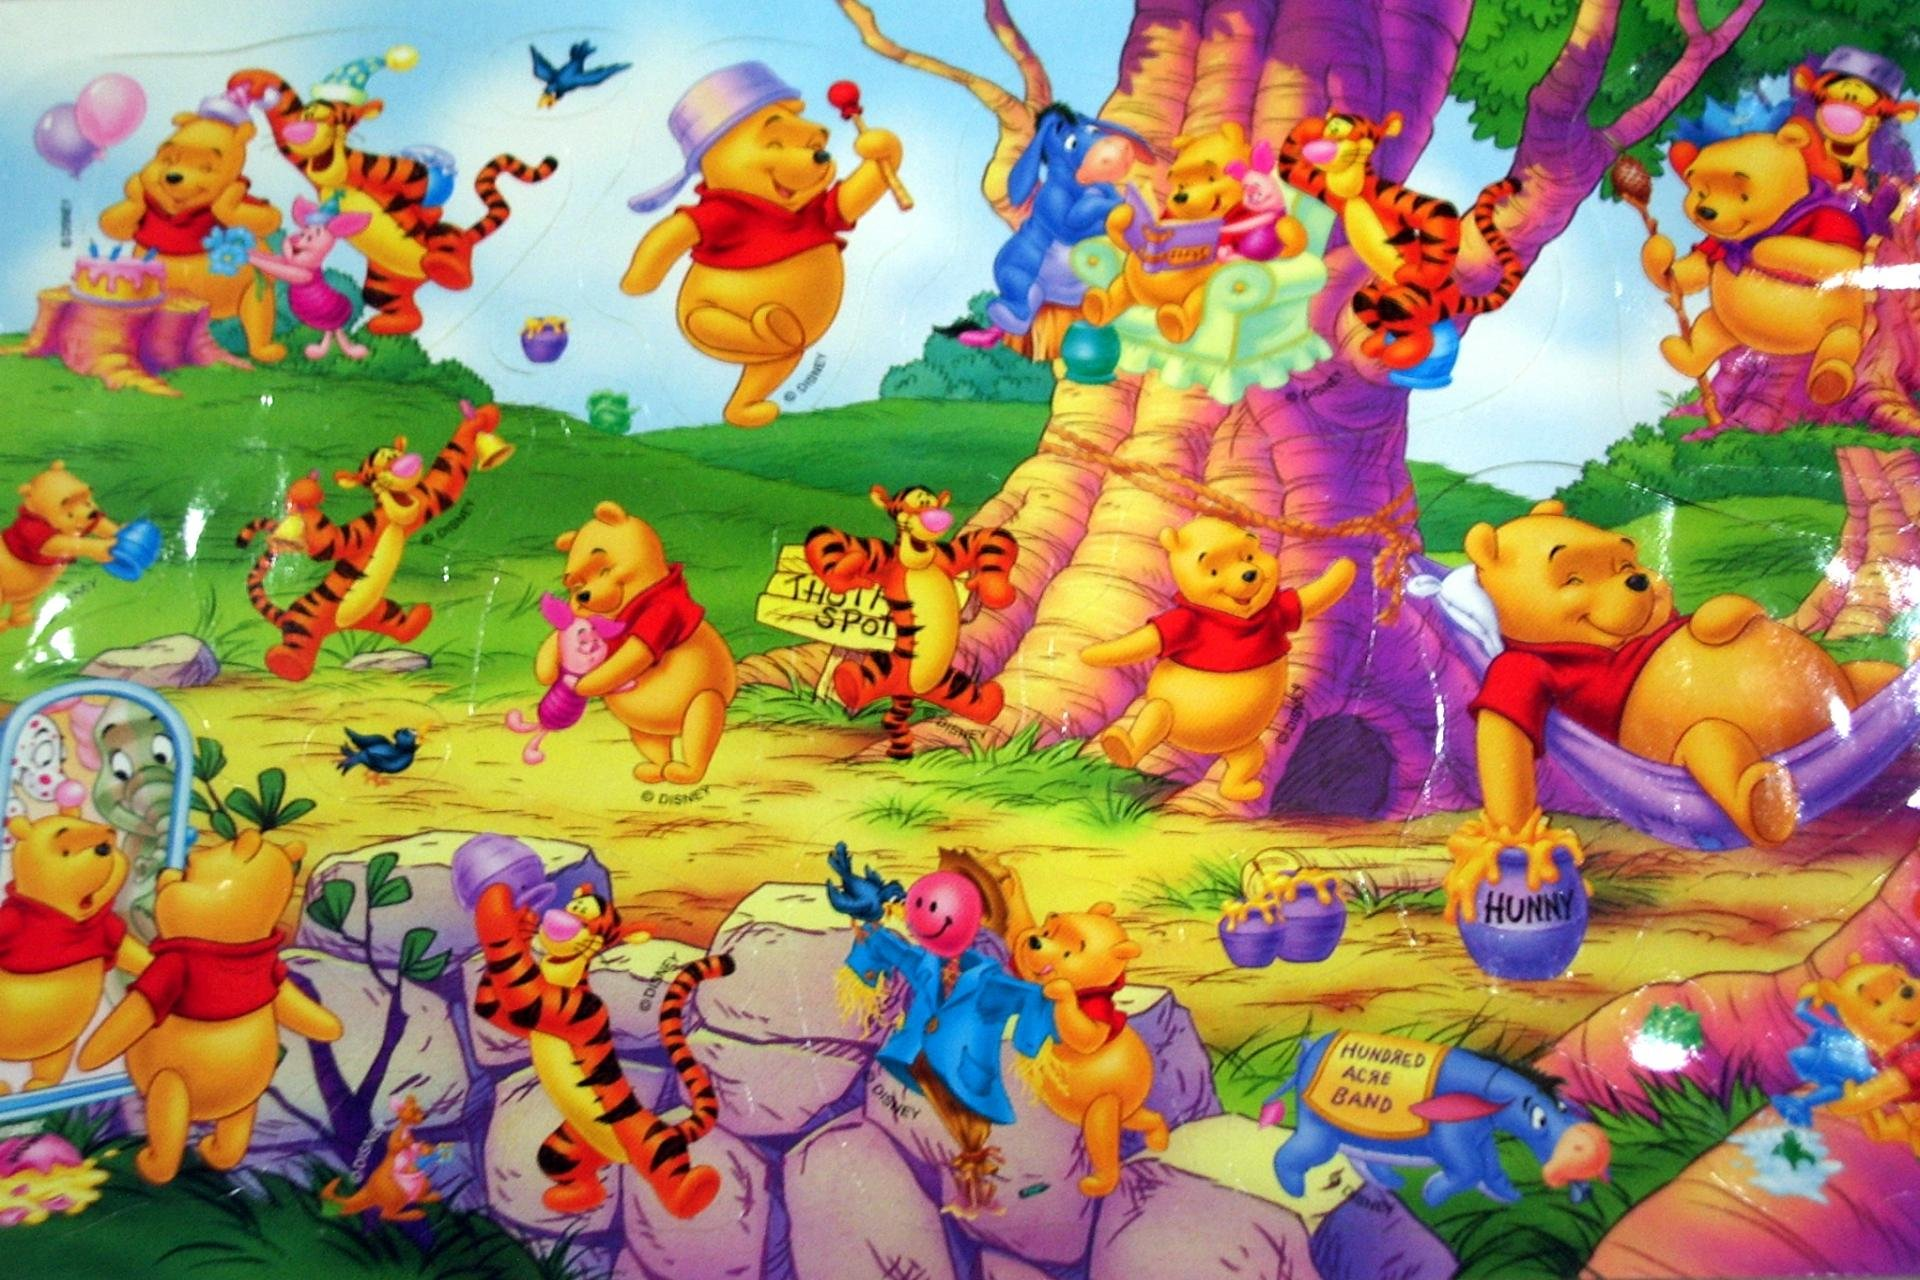 Best winnie the pooh wallpaper id74424 for high resolution hd best winnie the pooh wallpaper id74424 for high resolution hd 1920x1280 pc voltagebd Image collections